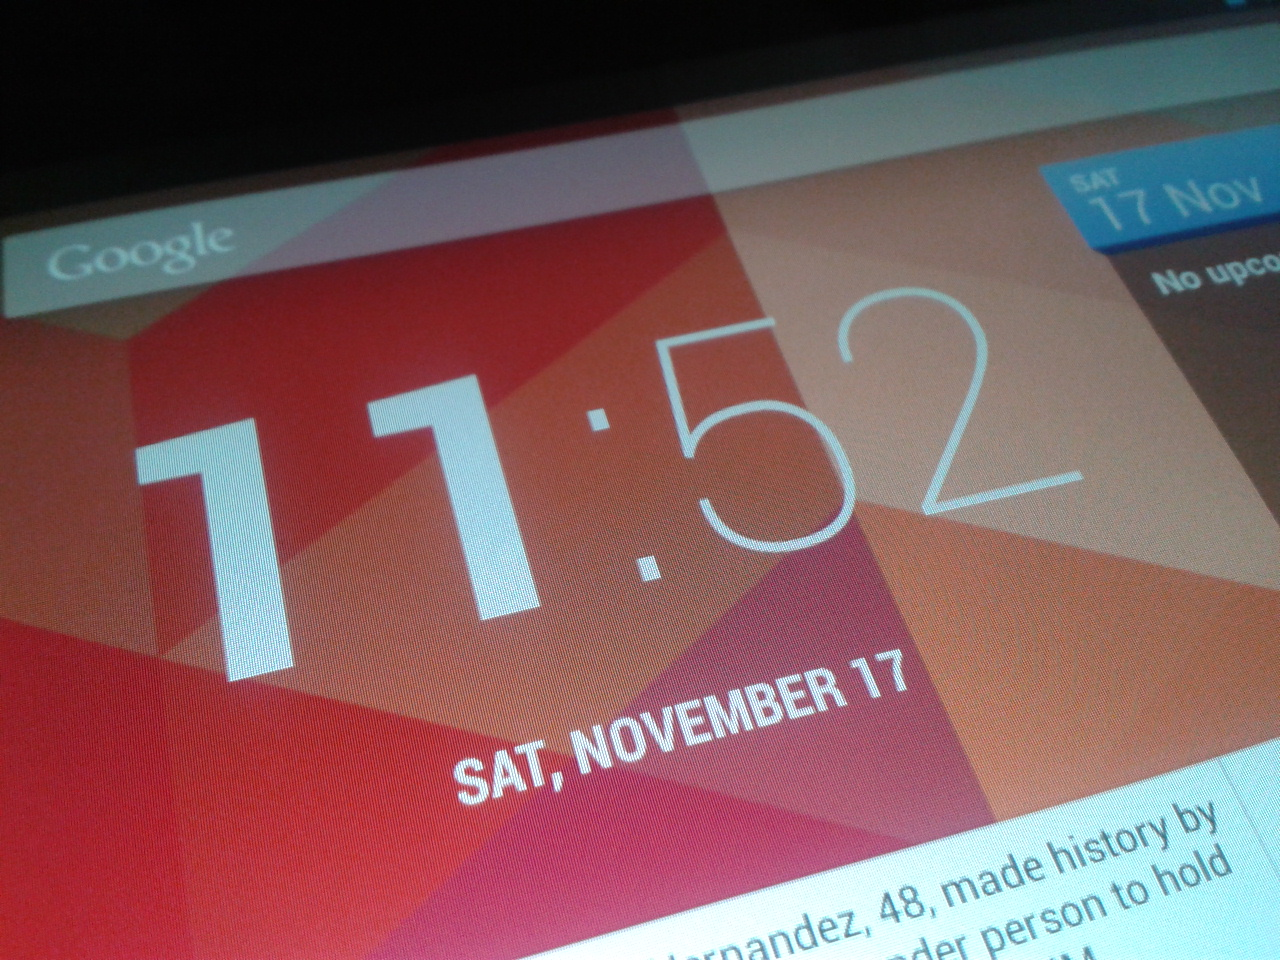 Clock widget for Android 4.2